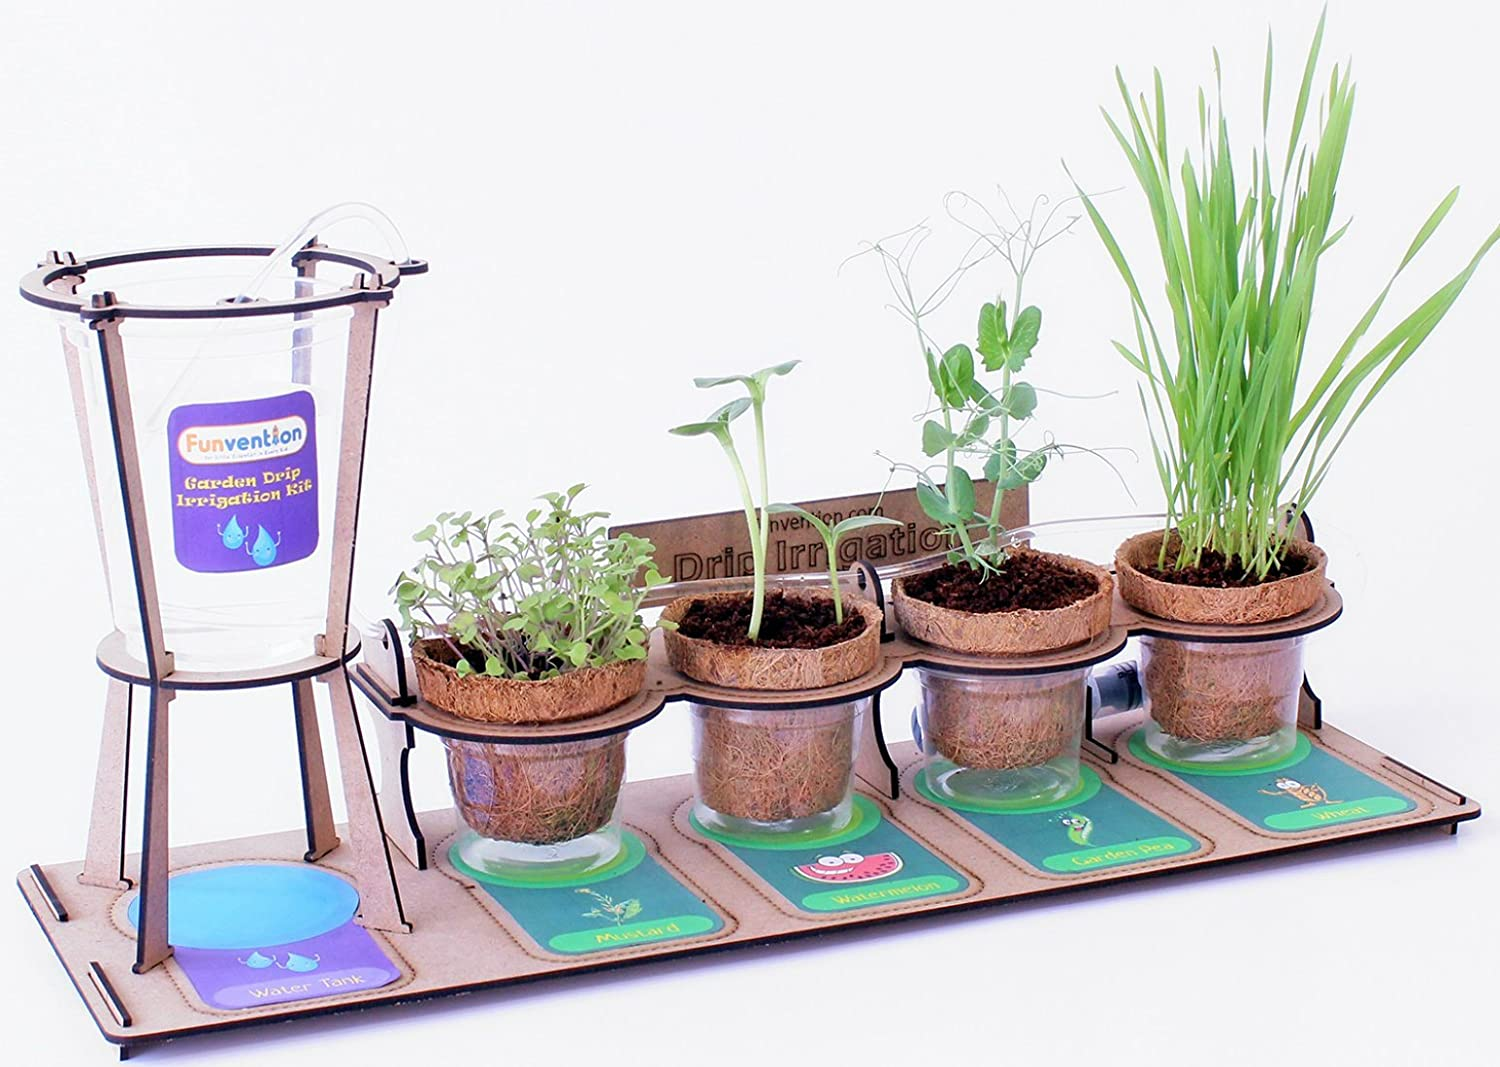 Science toys kits online buy science learning toys kits for funvention garden drip irrigation kit diy science educational toy grow explore and learn solutioingenieria Gallery